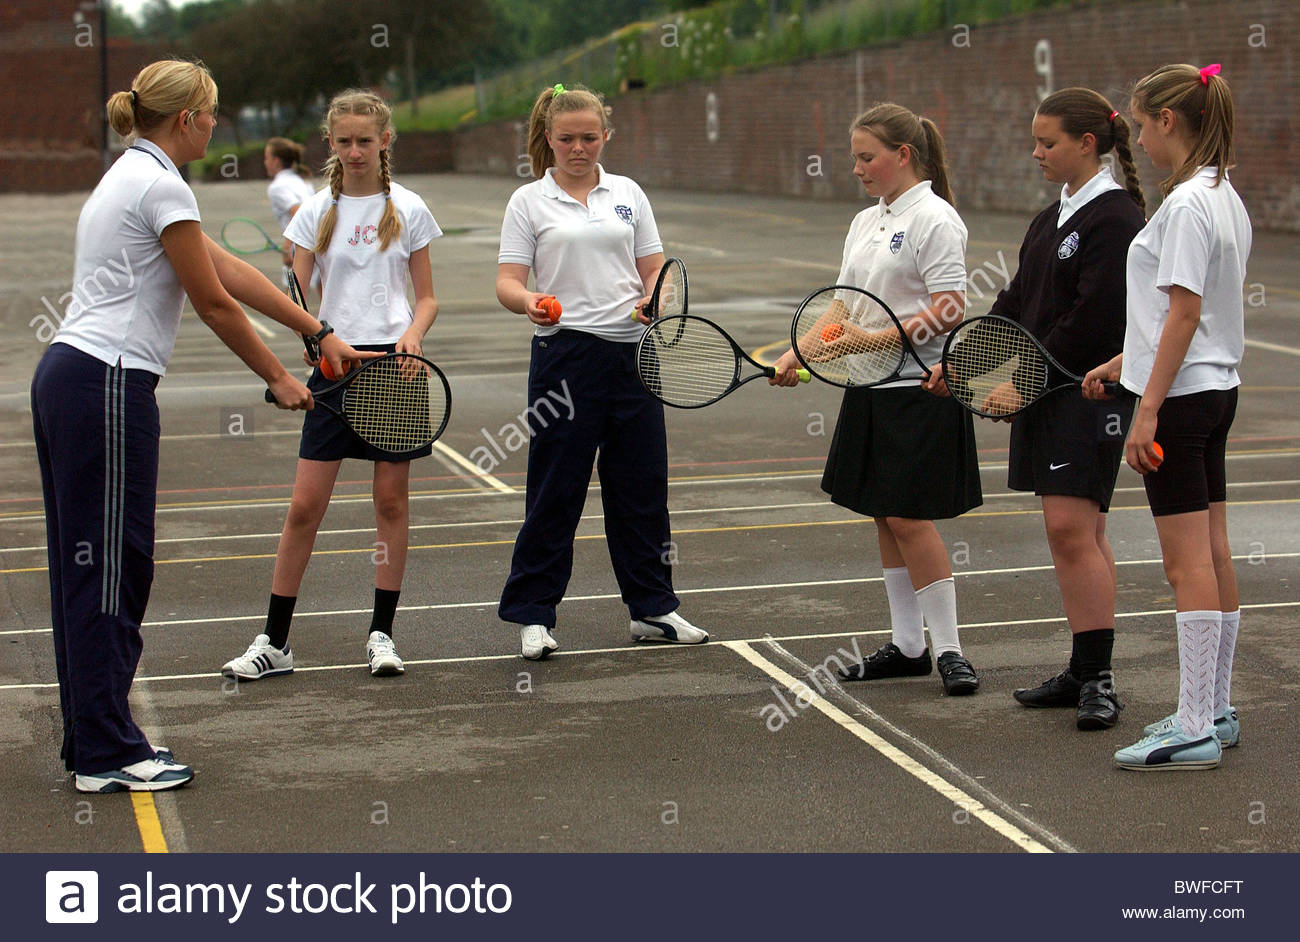 physical education in secondary schools This study investigated the nature and extent of physical activity promotion in a sample of secondary schools in central england questionnaires were completed by 42 physical education heads of department and questions covered a range of contexts for the promotion of physical activity in schools.